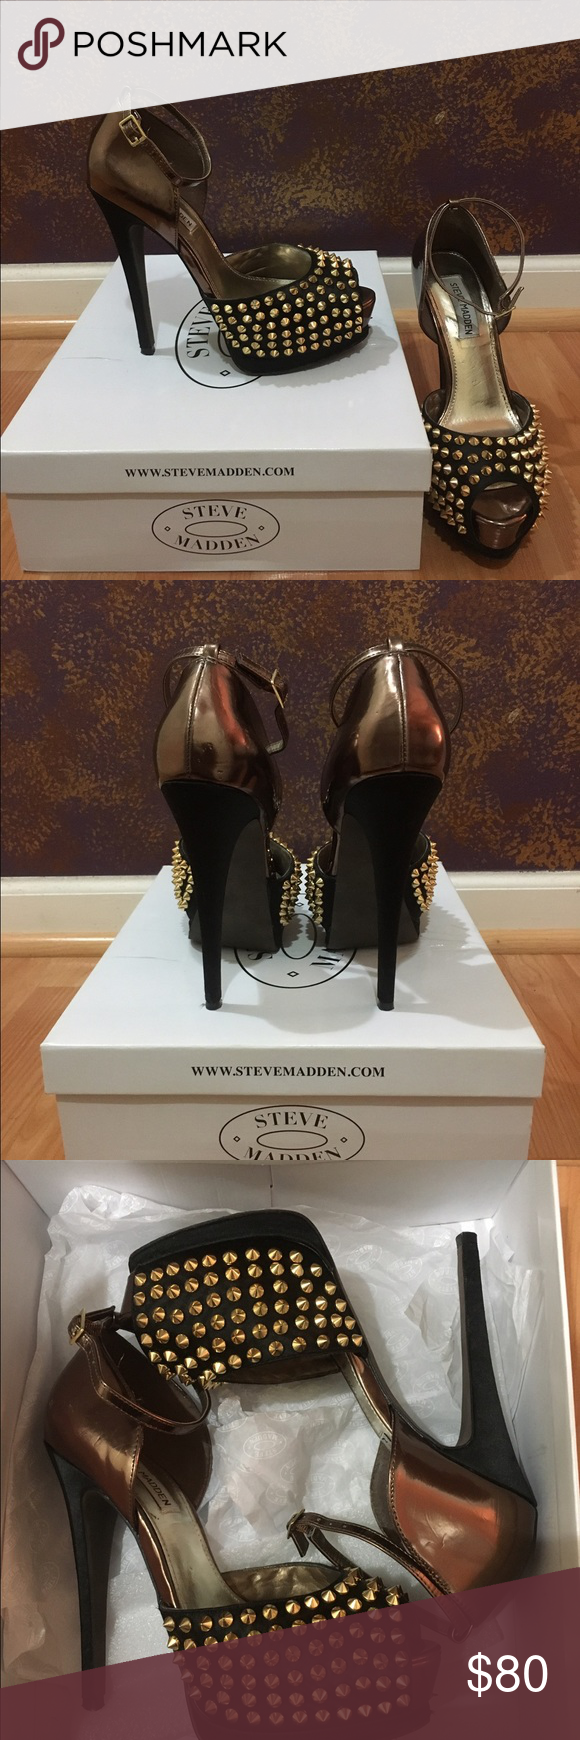 """Steve Madden Black and Gold Studded Peep Toe Heels Beautiful black and gold studded heels by Steve Madden.  Straps around the ankle.  Only worn a few times.  Size 8.  Heel is 6"""" with a 2"""" platform (so feels 4"""") Comes with box. Steve Madden Shoes Heels"""